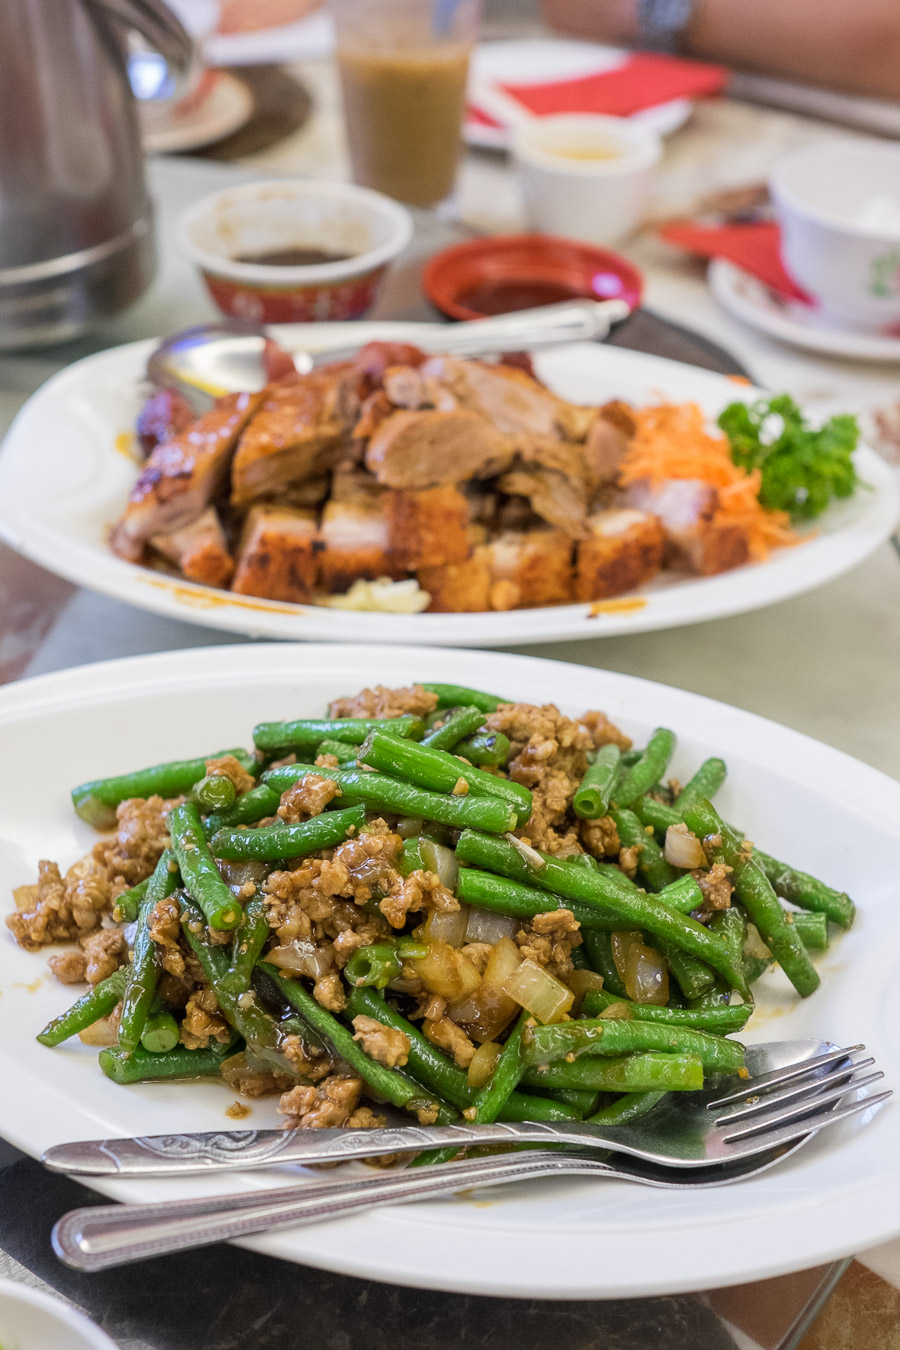 Green beans with pork mince (my favourite)